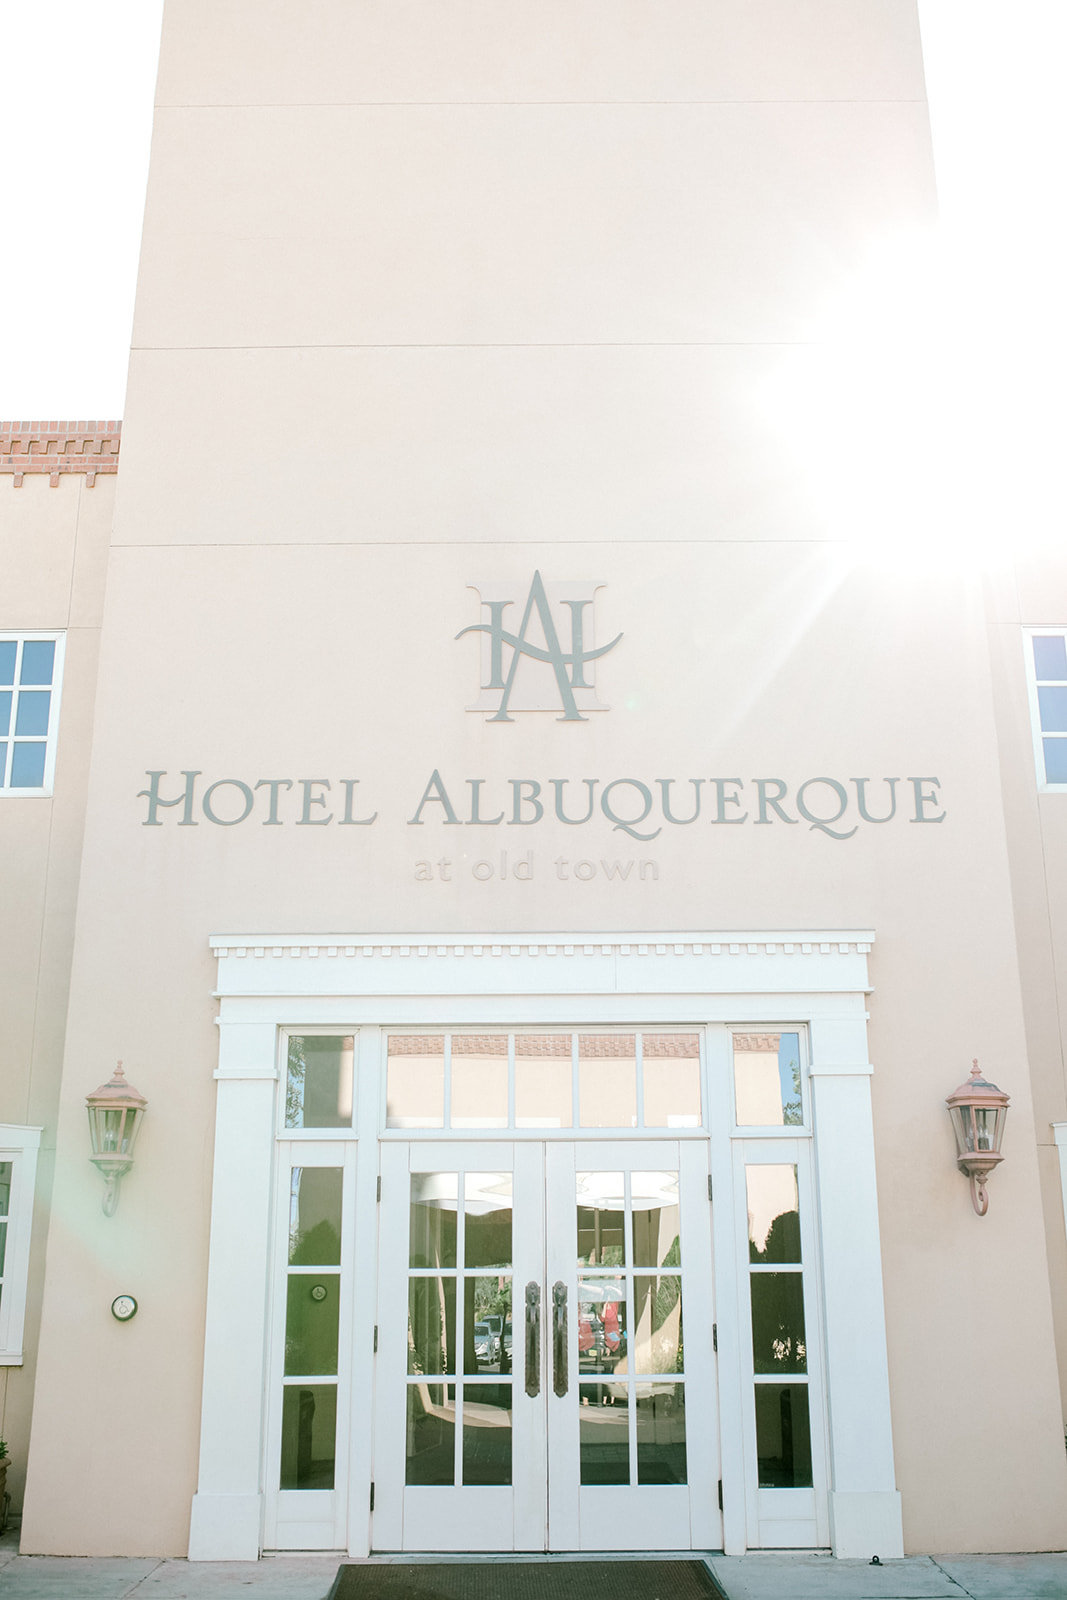 Albuquerque Wedding Photographer_Hotel Albuquerque_www.tylerbrooke.com_Kate Kauffman_001